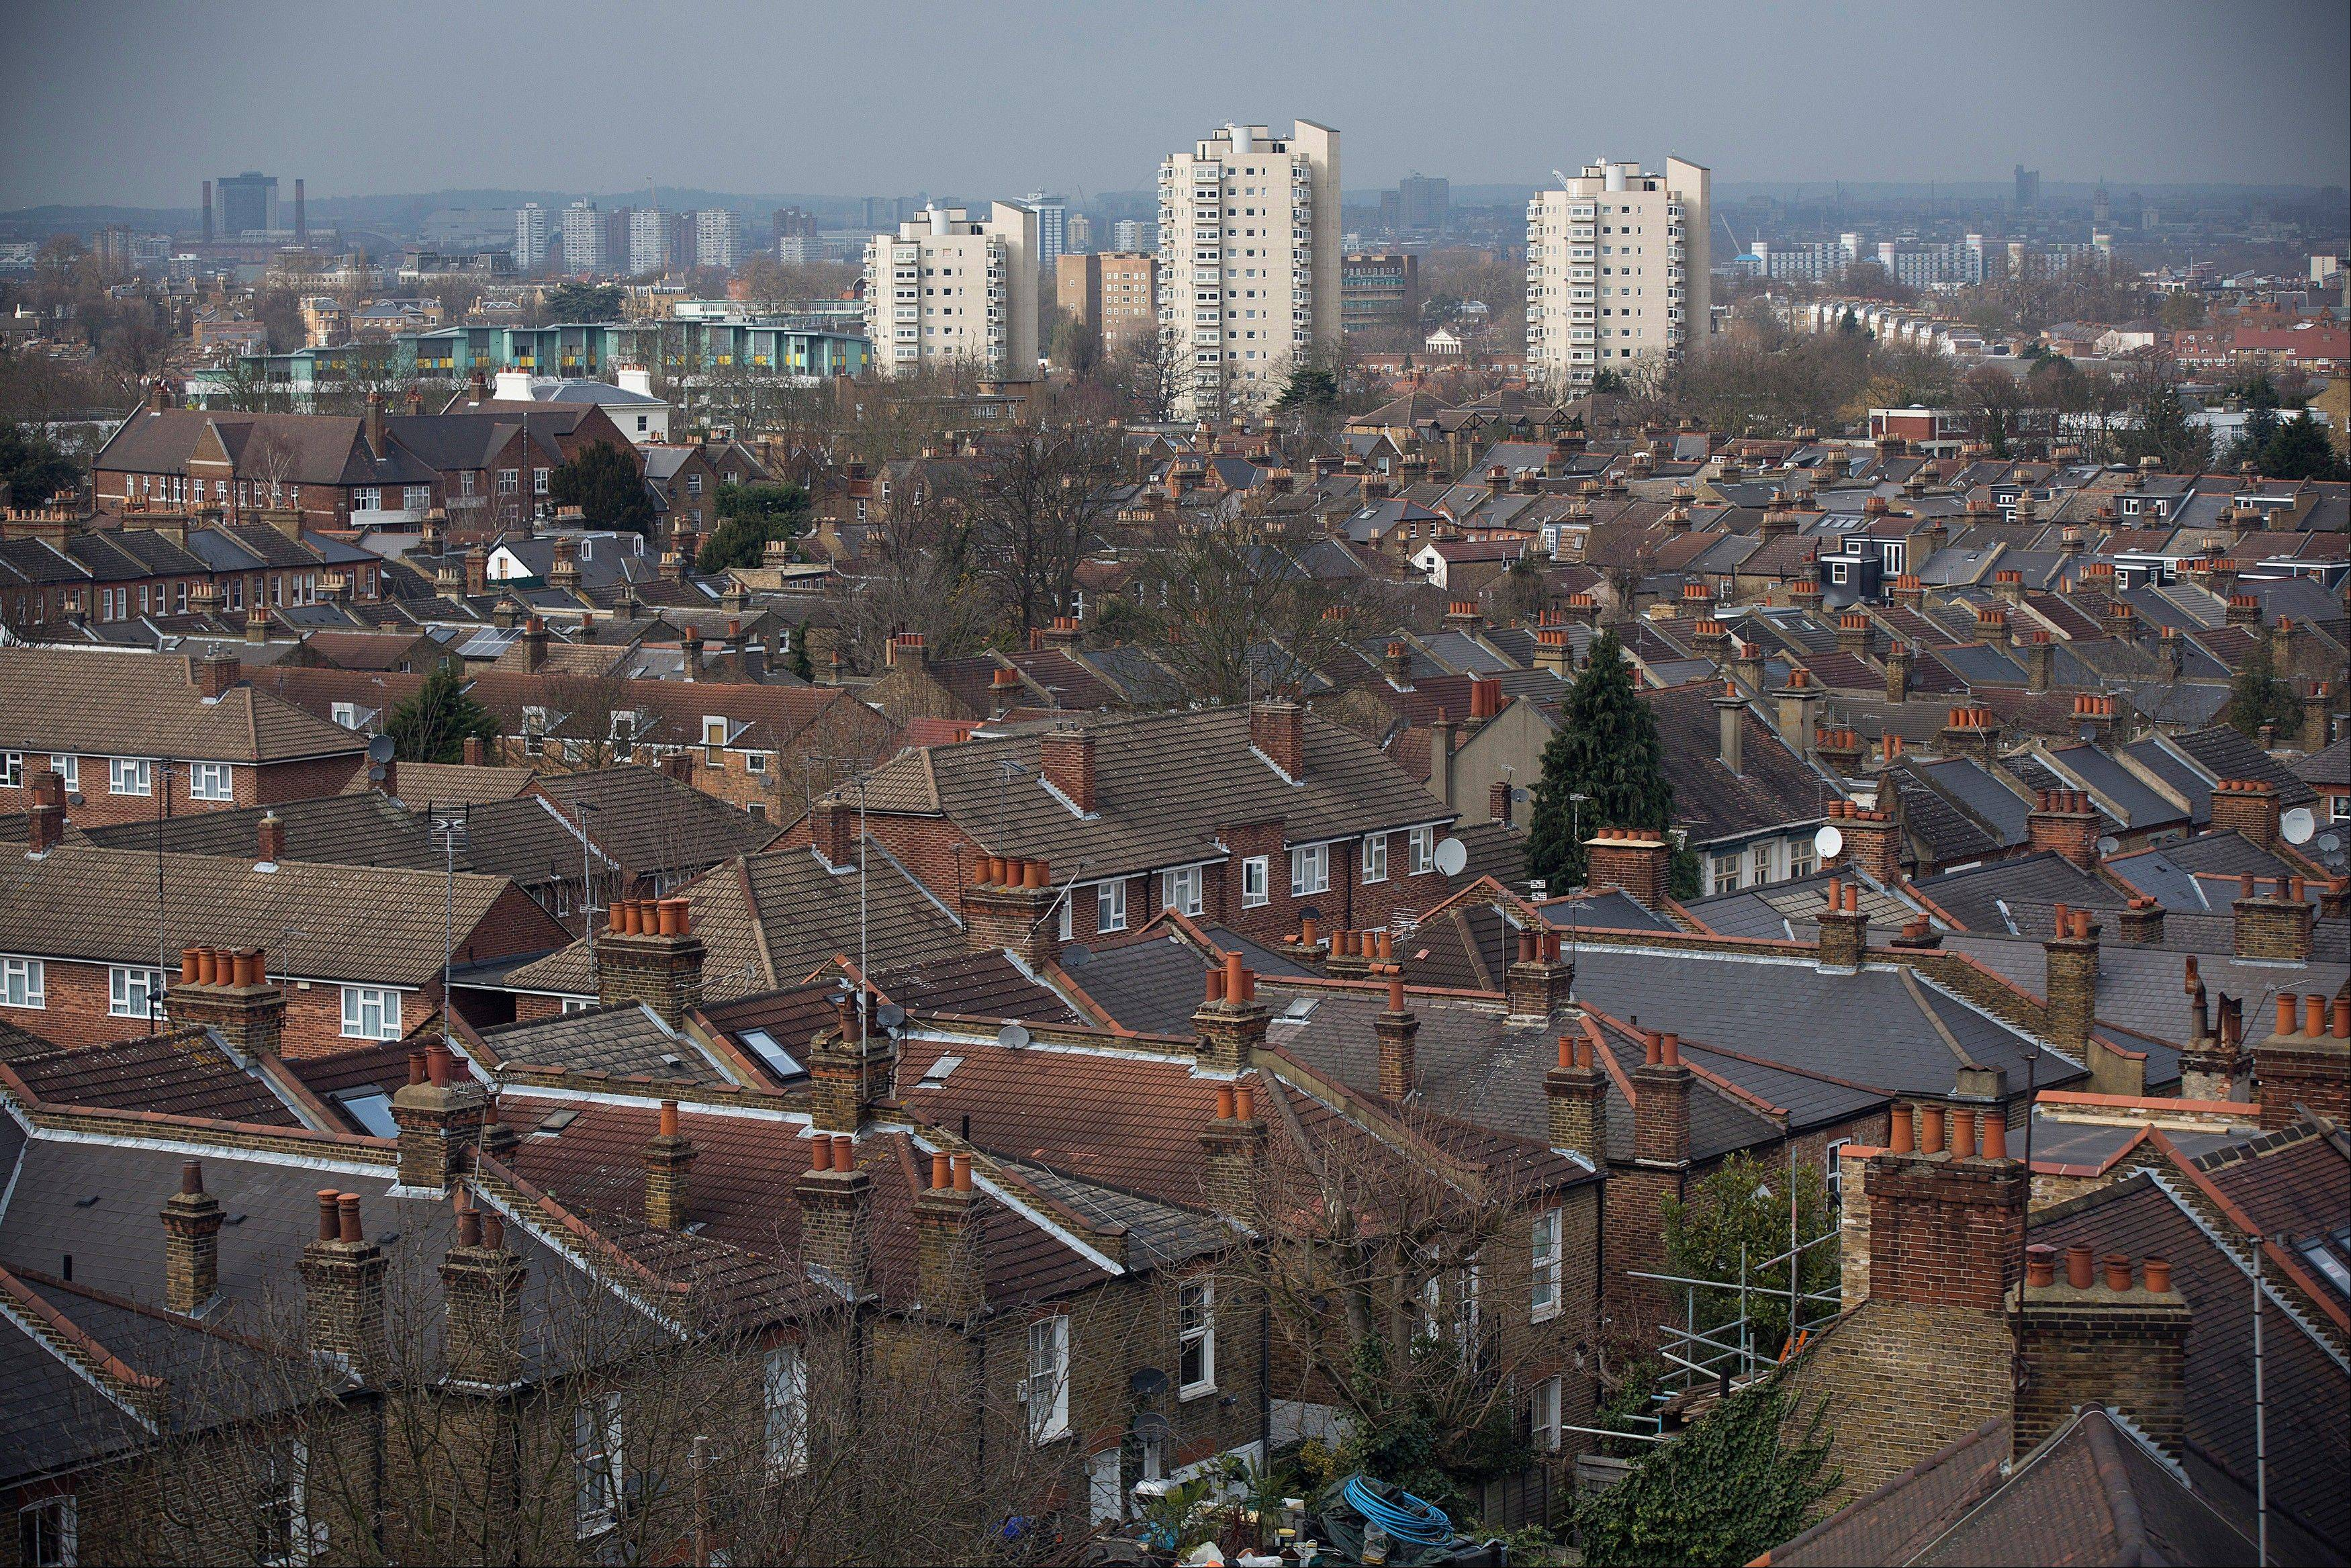 Residential houses and apartment blocks in the Brixton district of London.